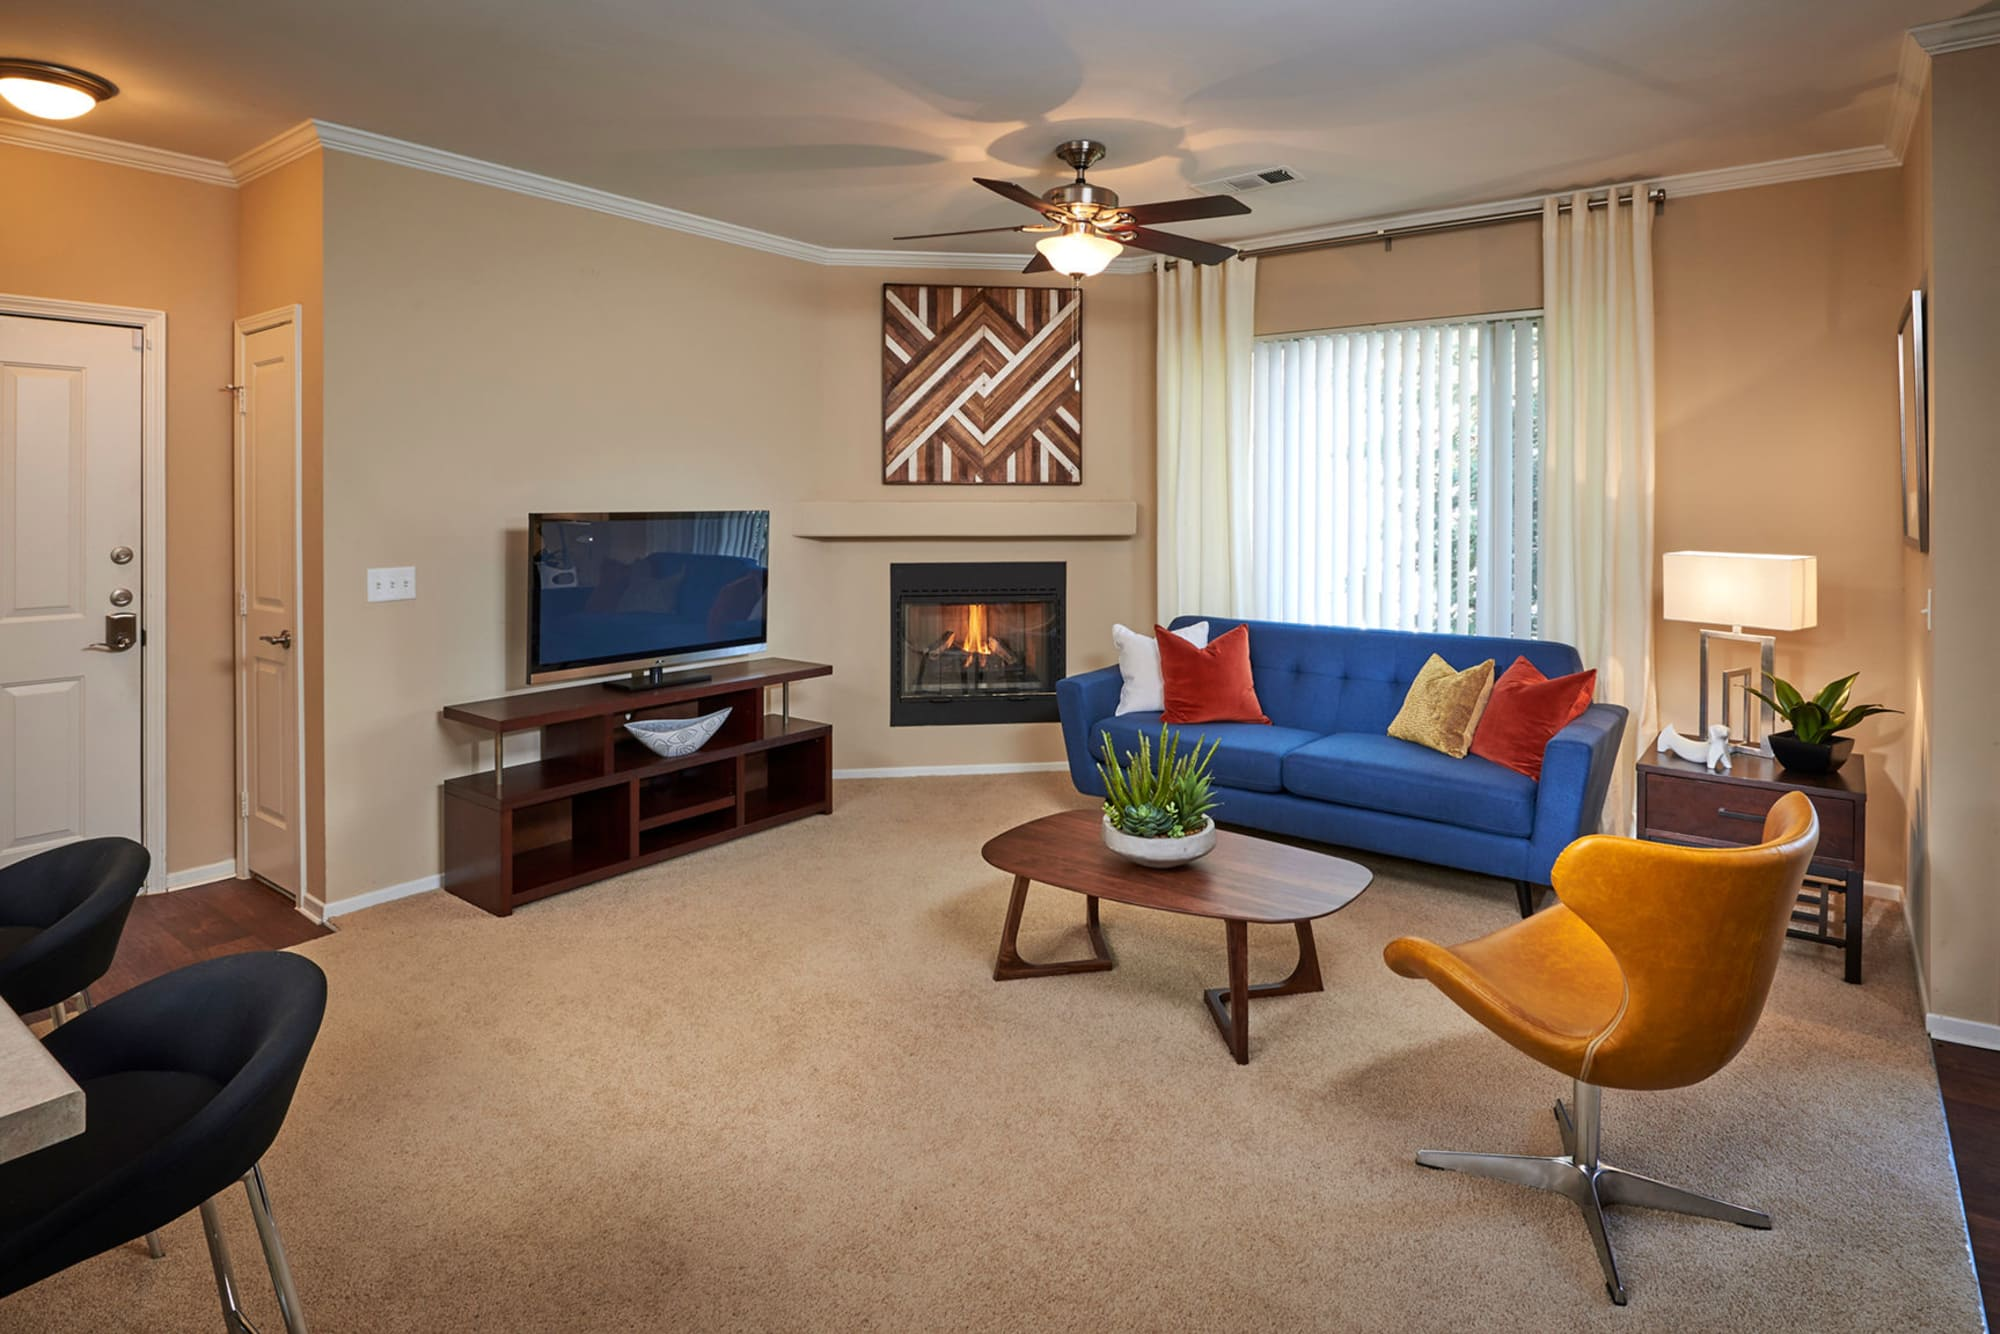 Living room with plush carpeting at Legend Oaks Apartments in Aurora, Colorado